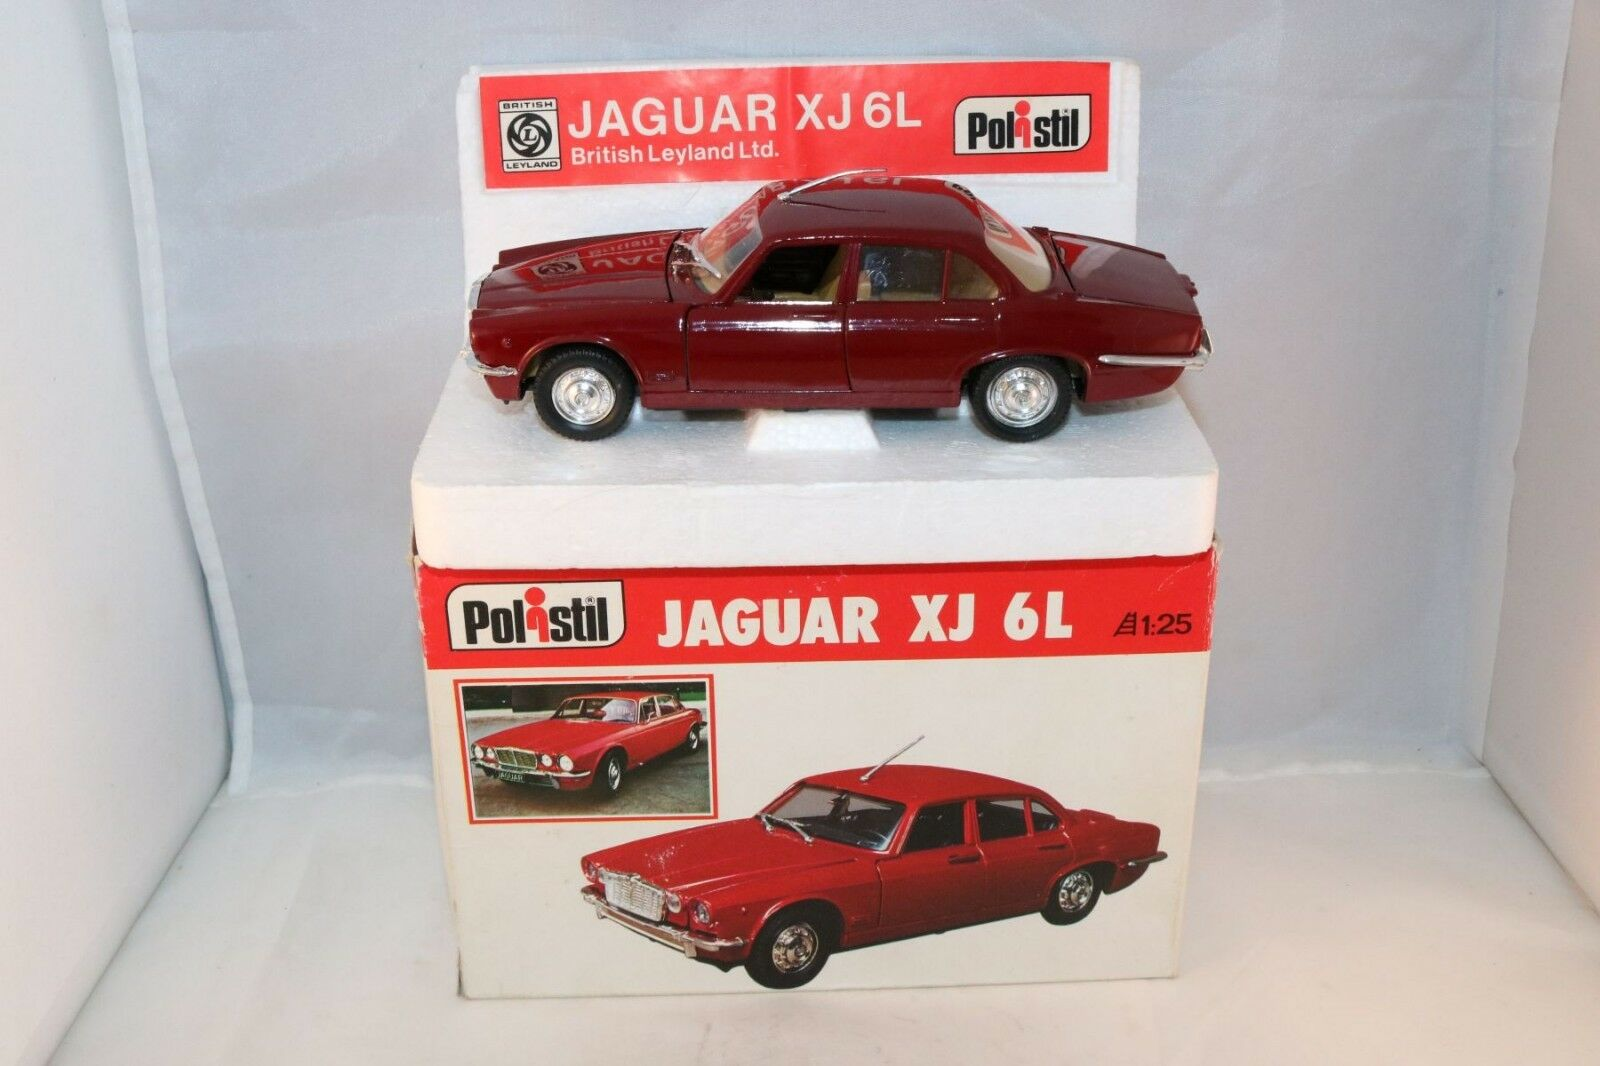 Polistil Polistil Polistil S31 S.31 Jaguar XJ 6L very near mint in box 1:25 selten Superb a beauty 641175